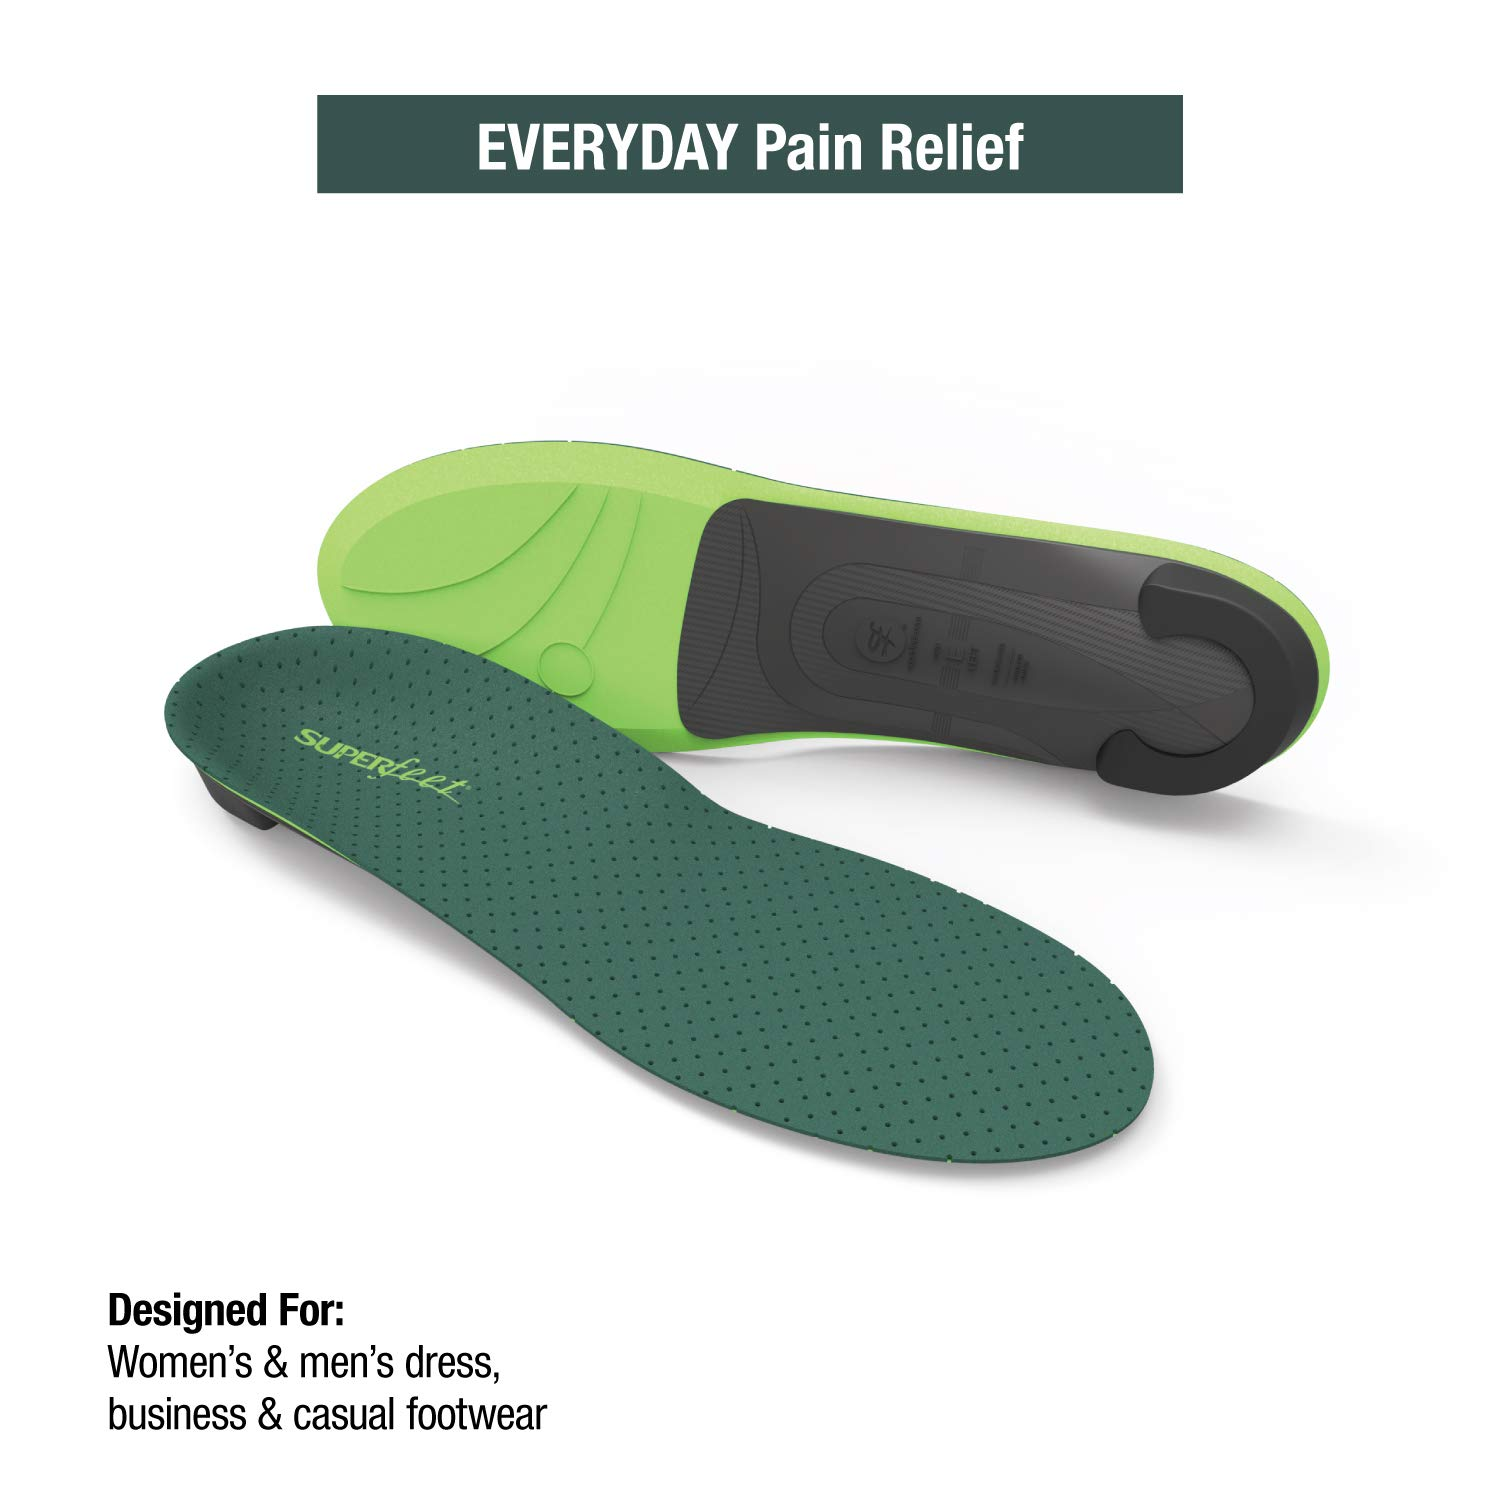 Superfeet Everyday Pain Relief Insoles, Customizable Heel Stability Professional-Grade Orthotic, Limestone, C: 6.5-8 US Womens / 5.5-7 US Mens by Superfeet (Image #2)